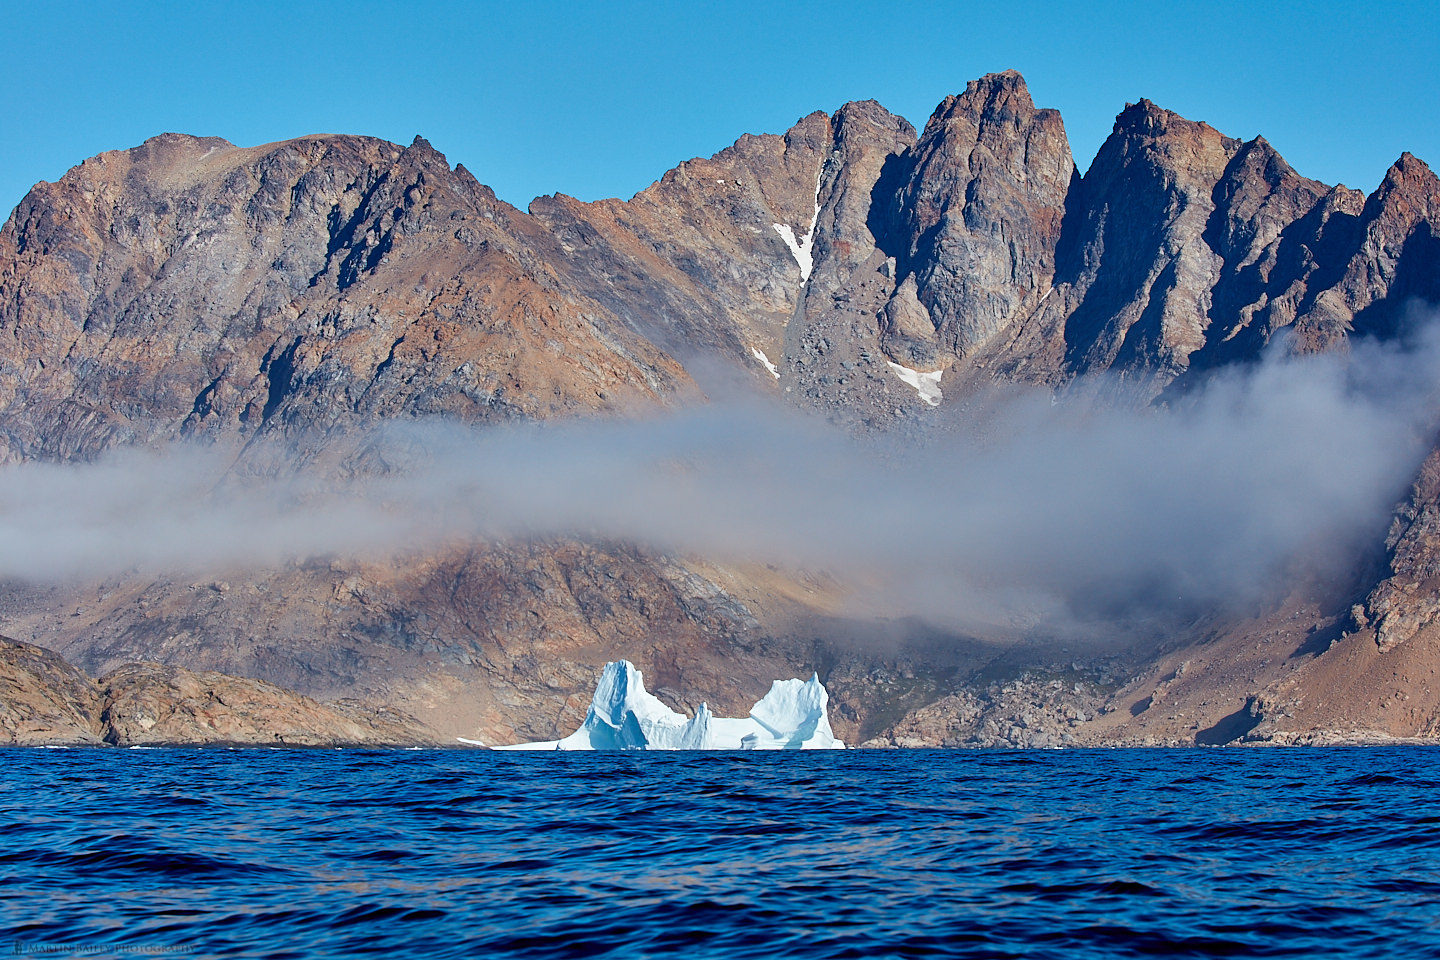 Iceberg with Mist and Mountains